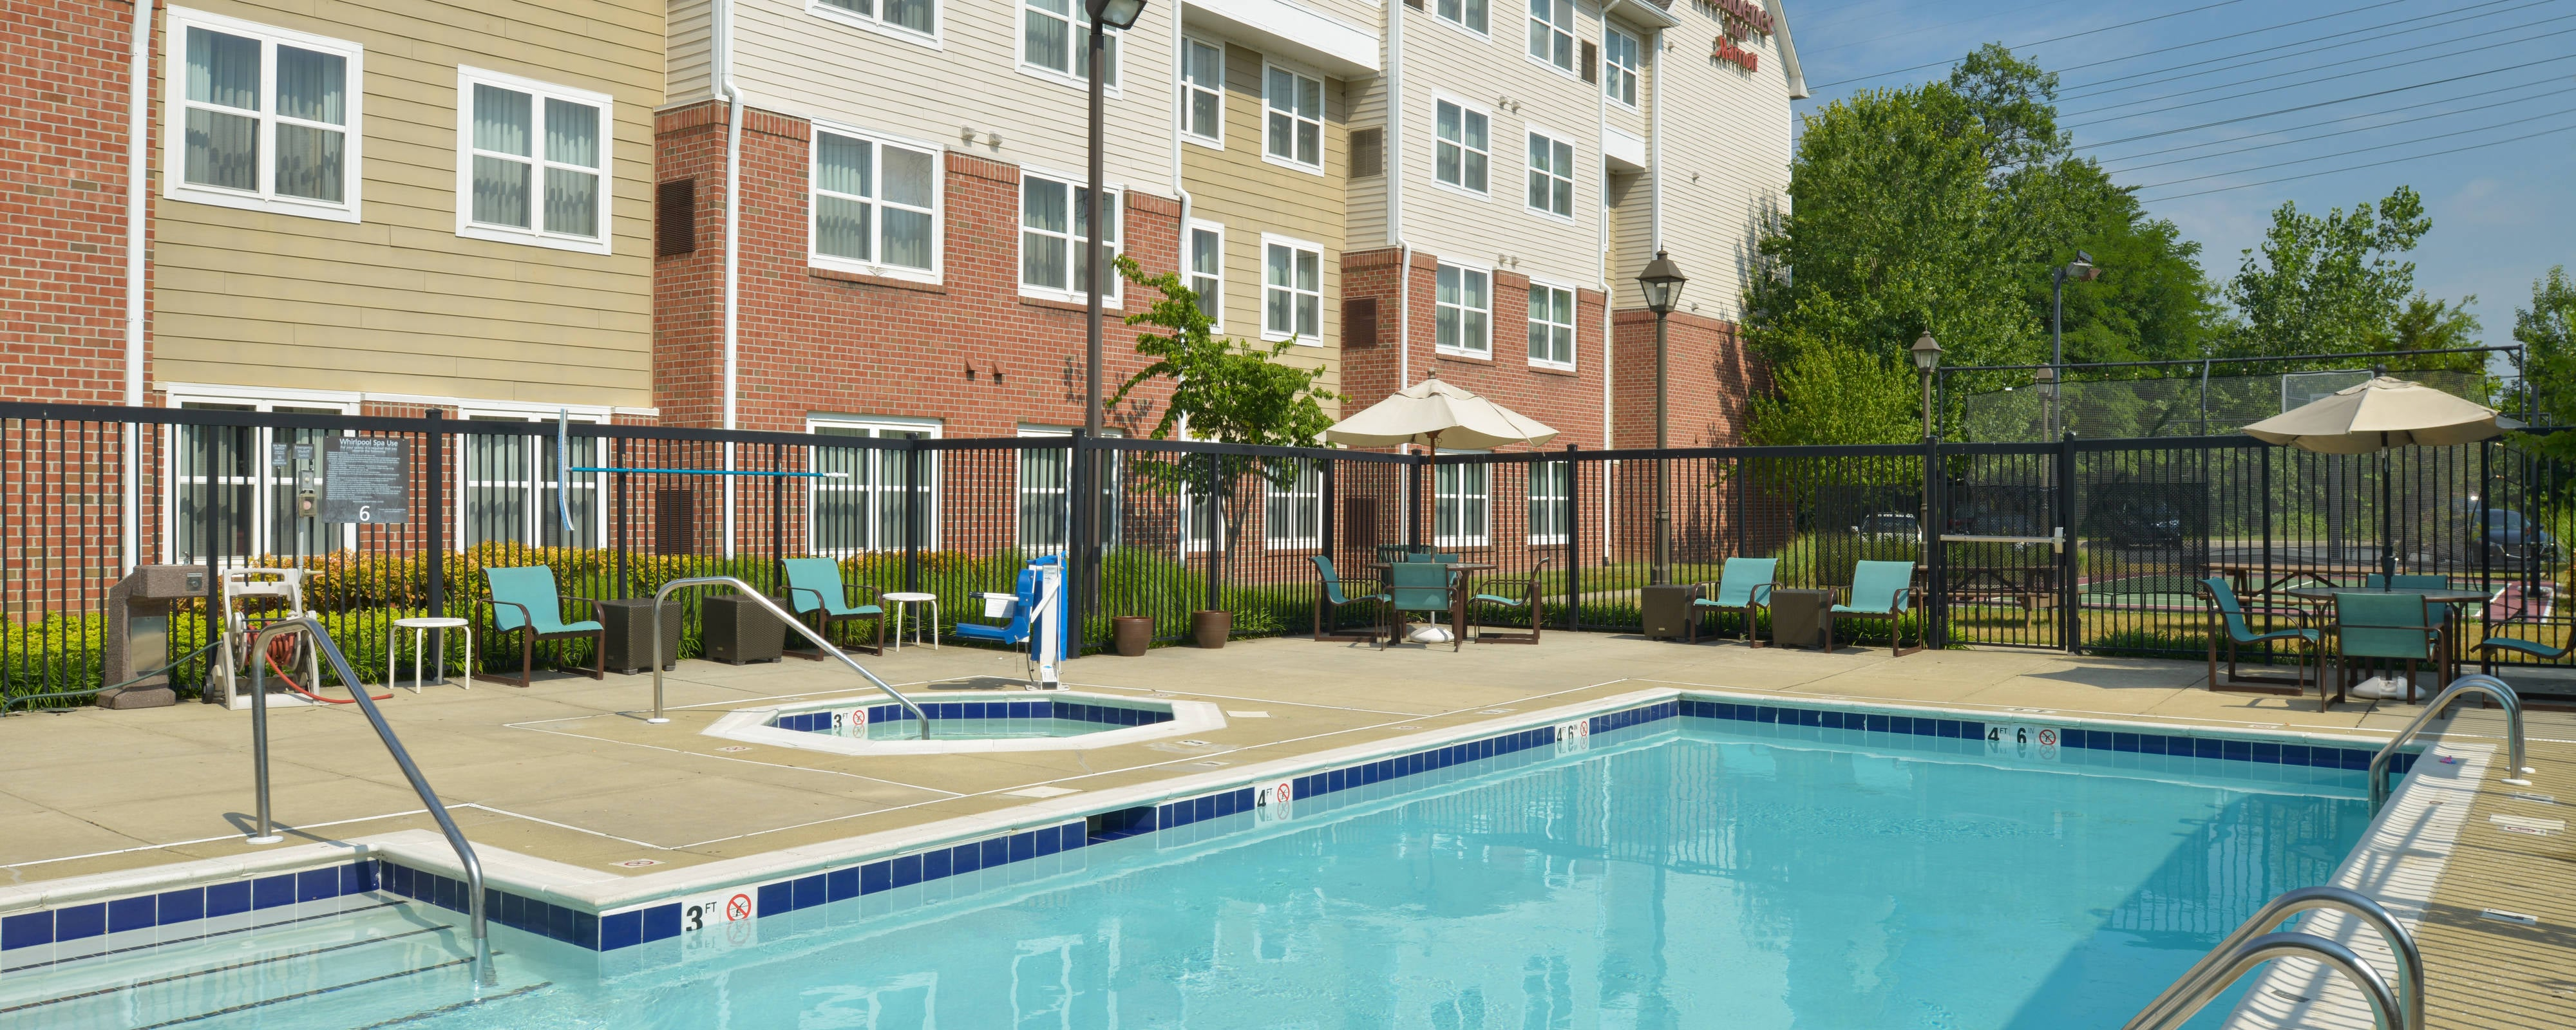 White Marsh Hotels With Pool And Gym Residence Inn Baltimore White Marsh